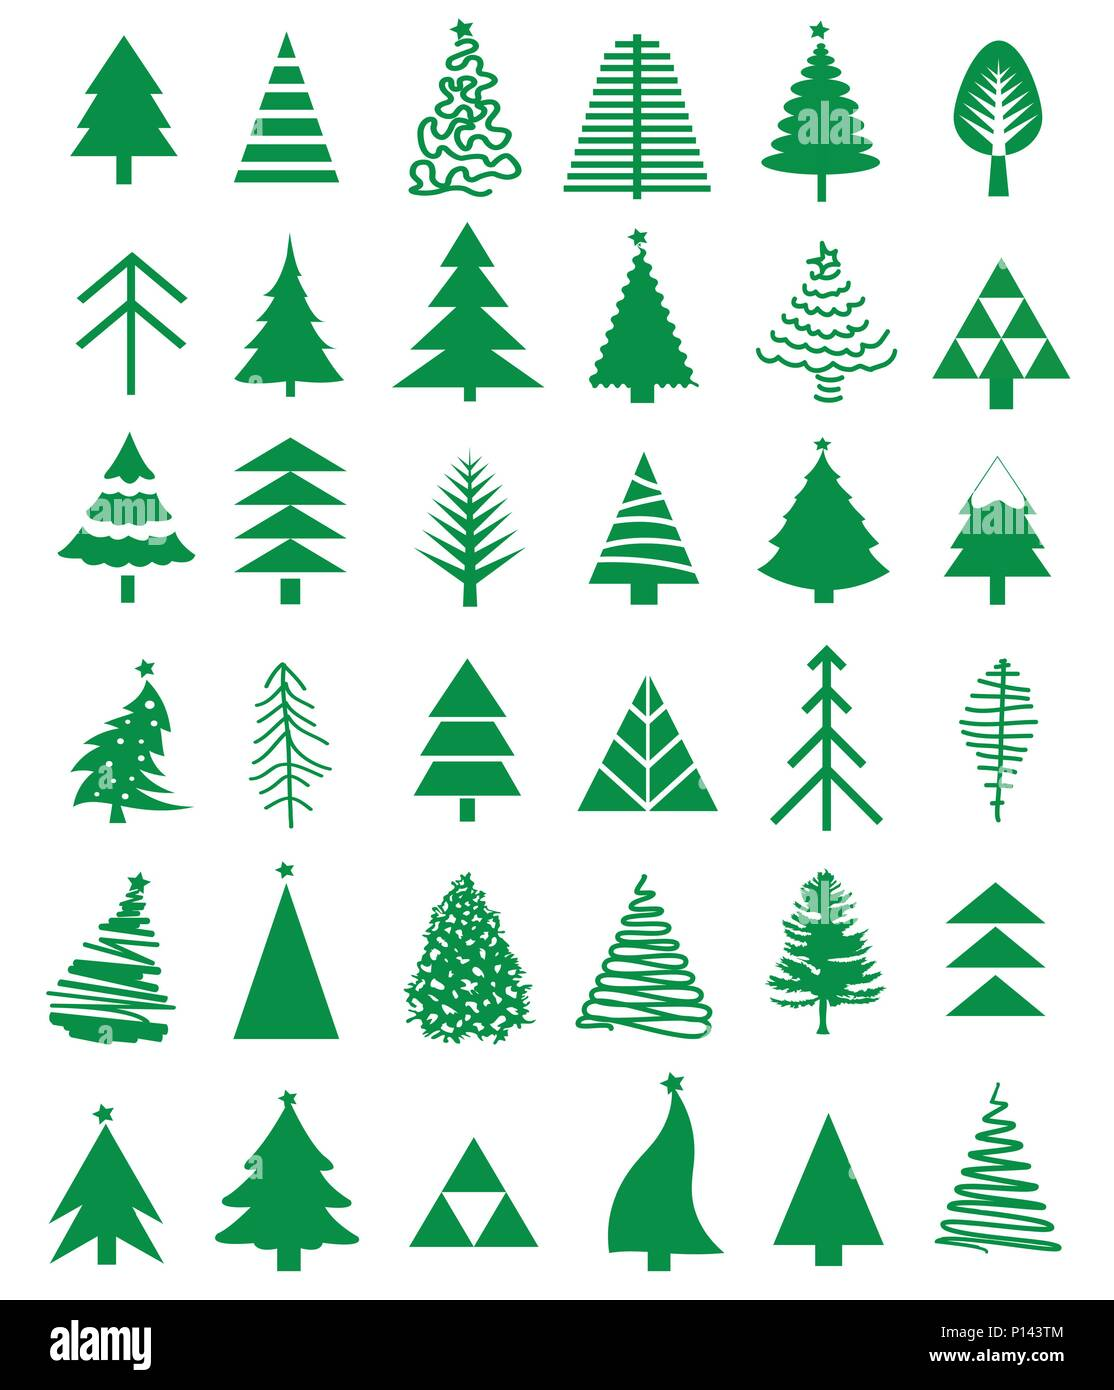 Christmas tree icon set - Stock Vector